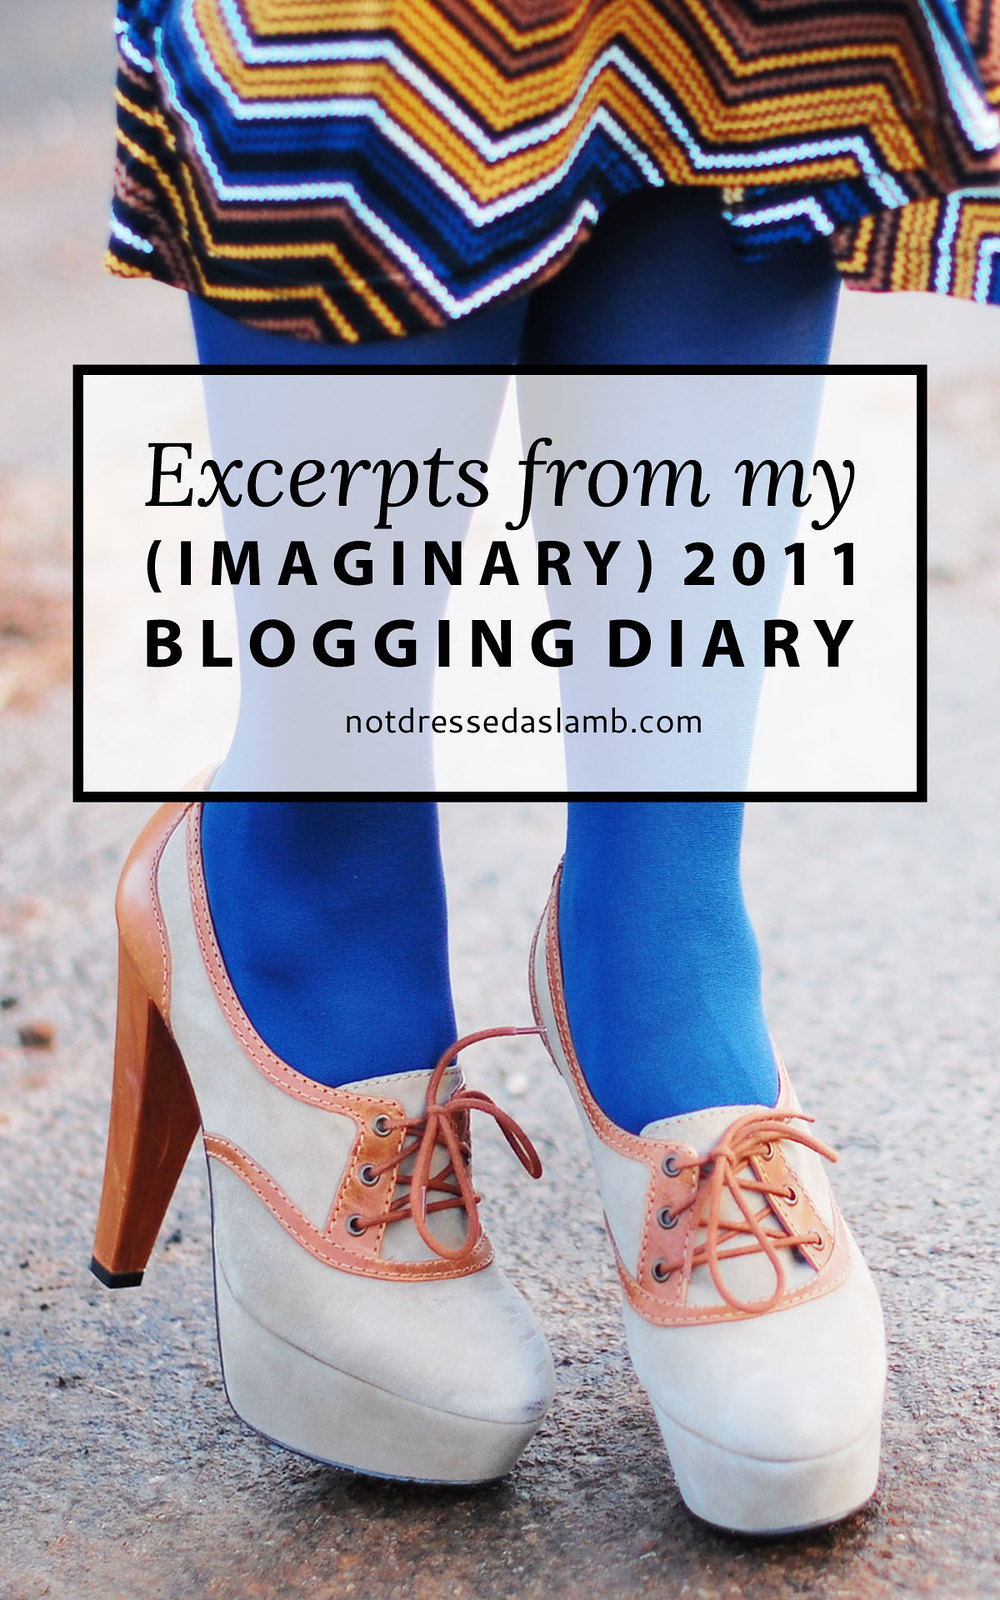 Excerpts From My (Imaginary) 2011 Blogging Diary - Not Dressed As Lamb